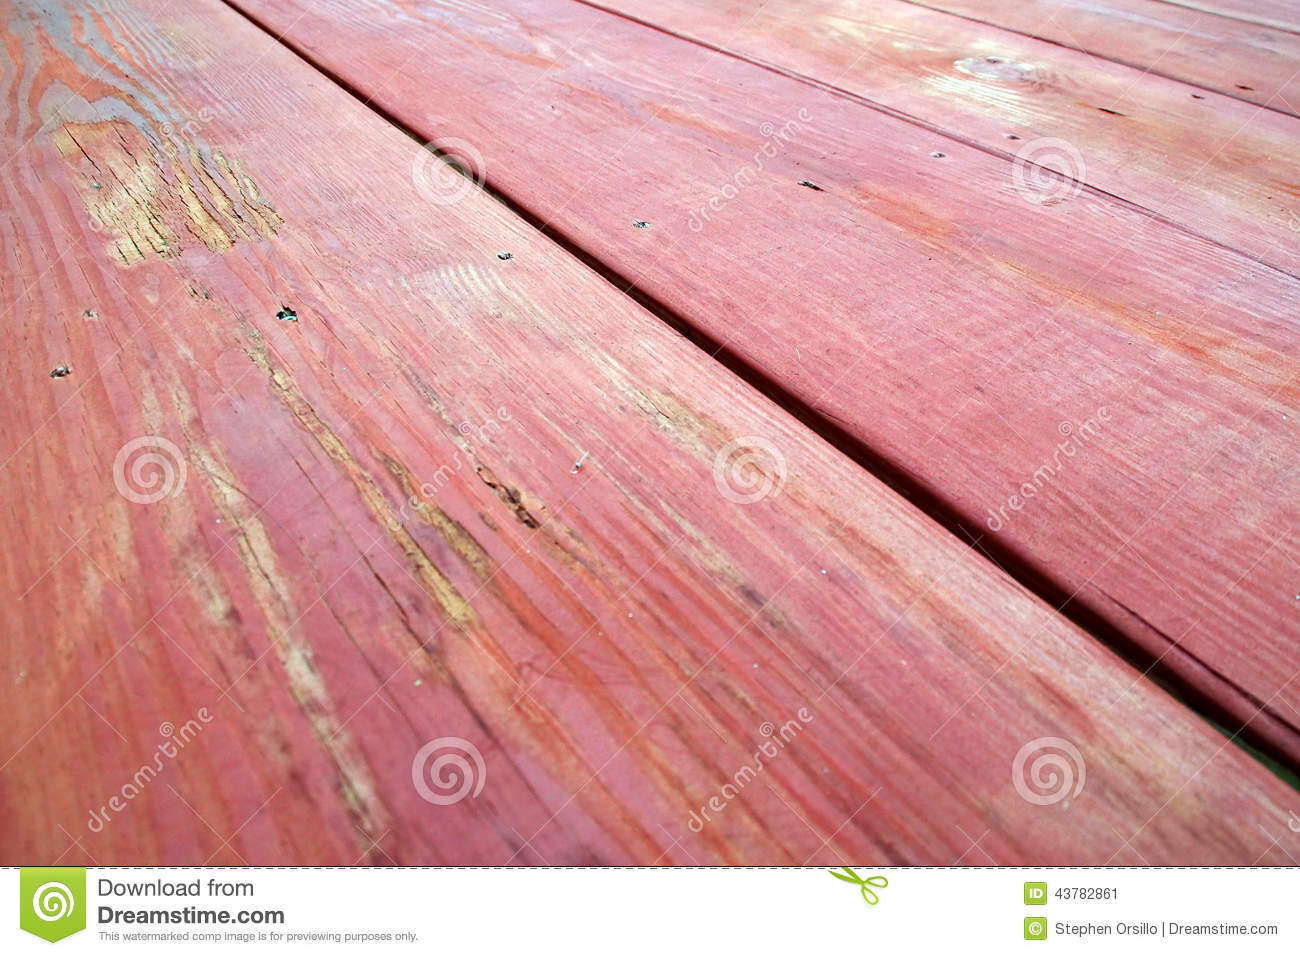 ... down the length of a red stained wooden picnic table in perspective